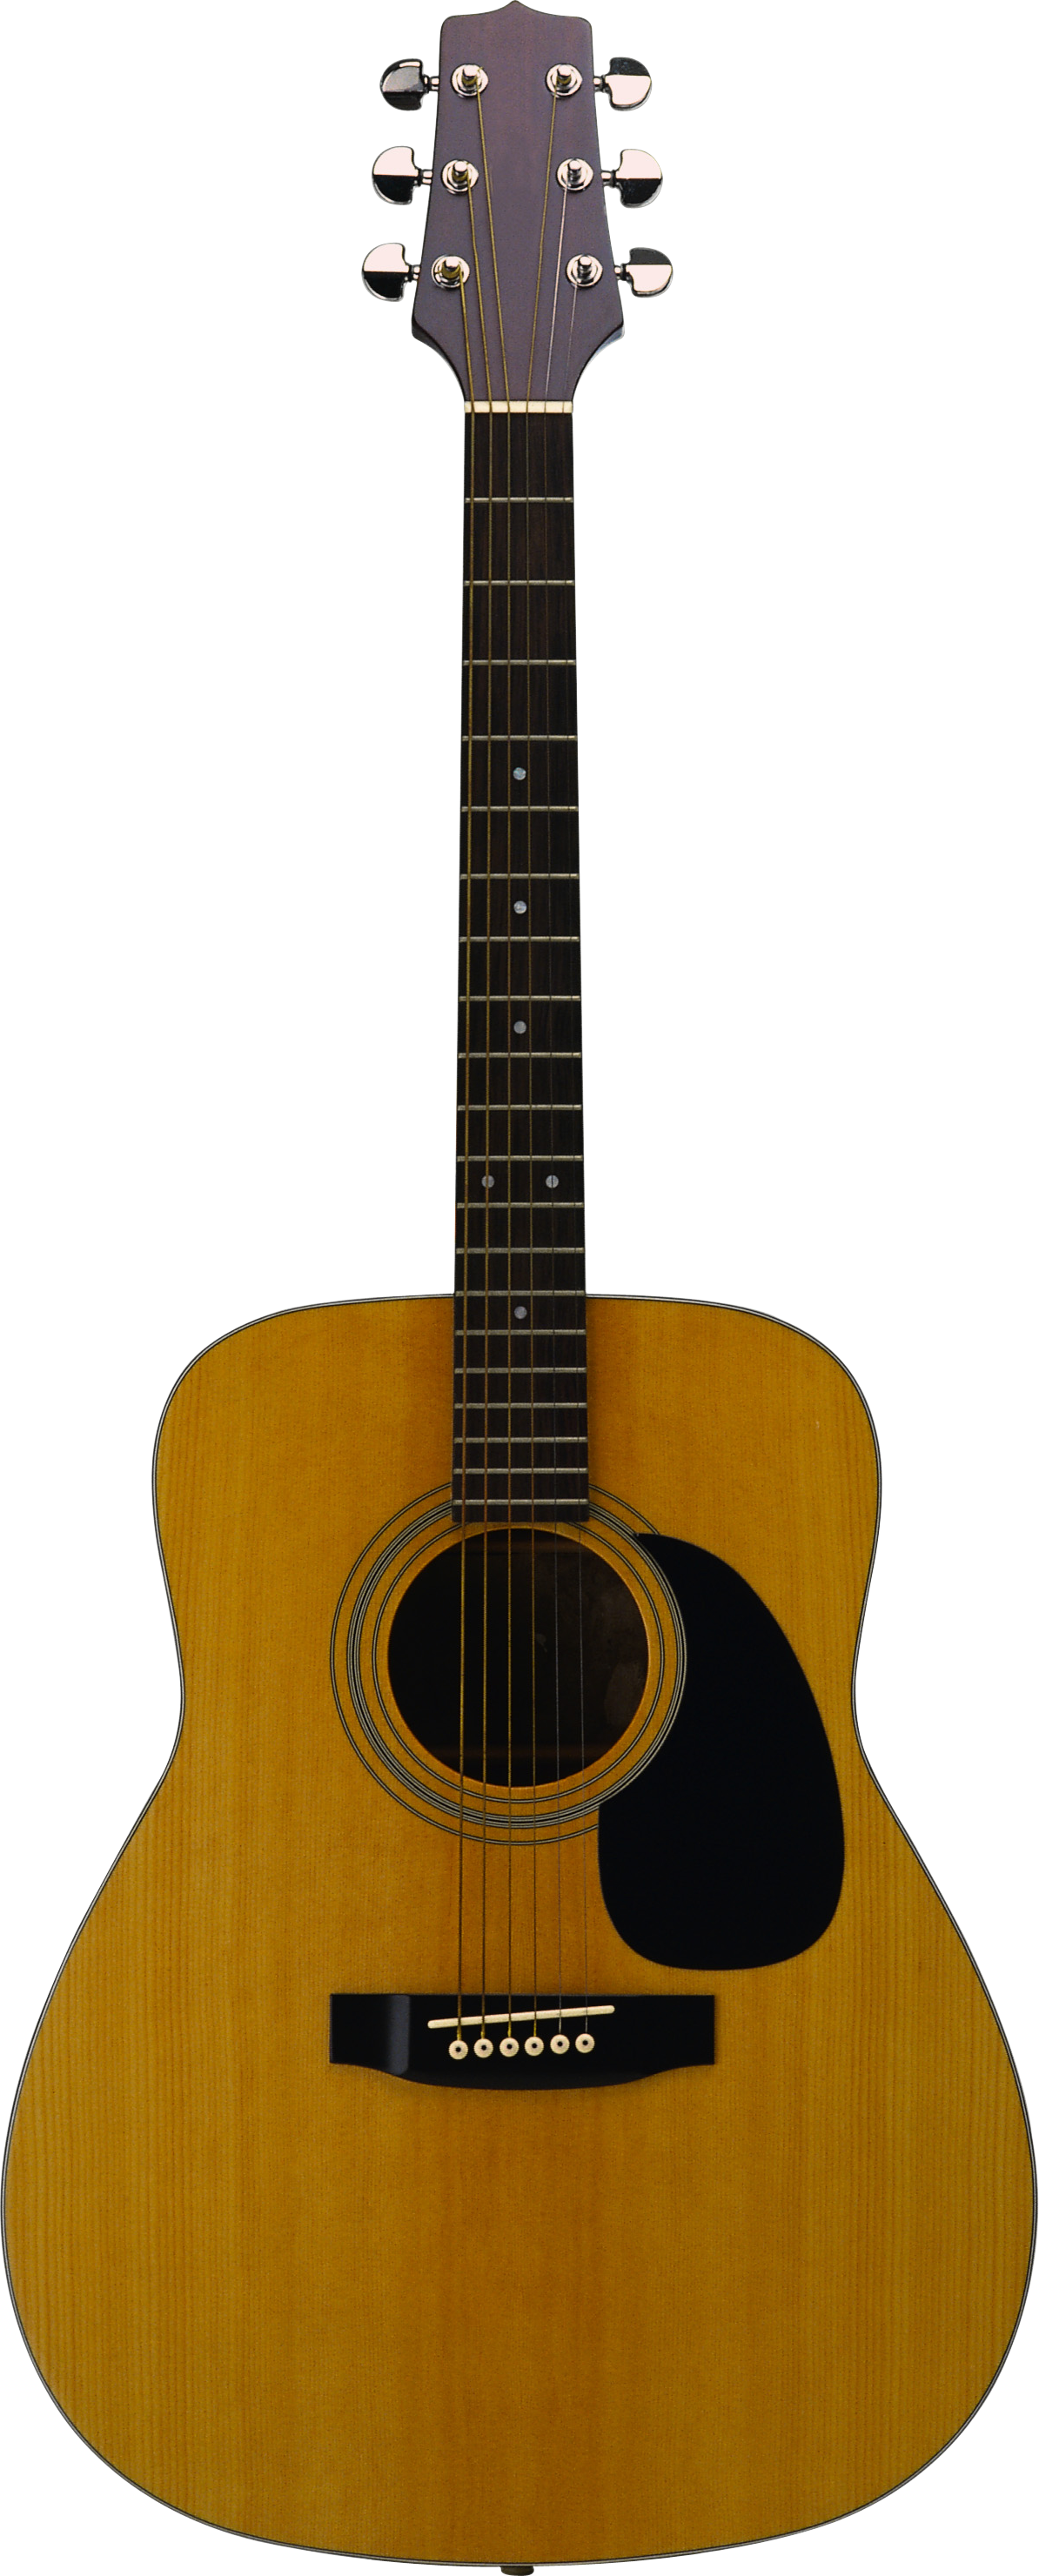 1194x2961 Guitar Png Images Free Picture Download